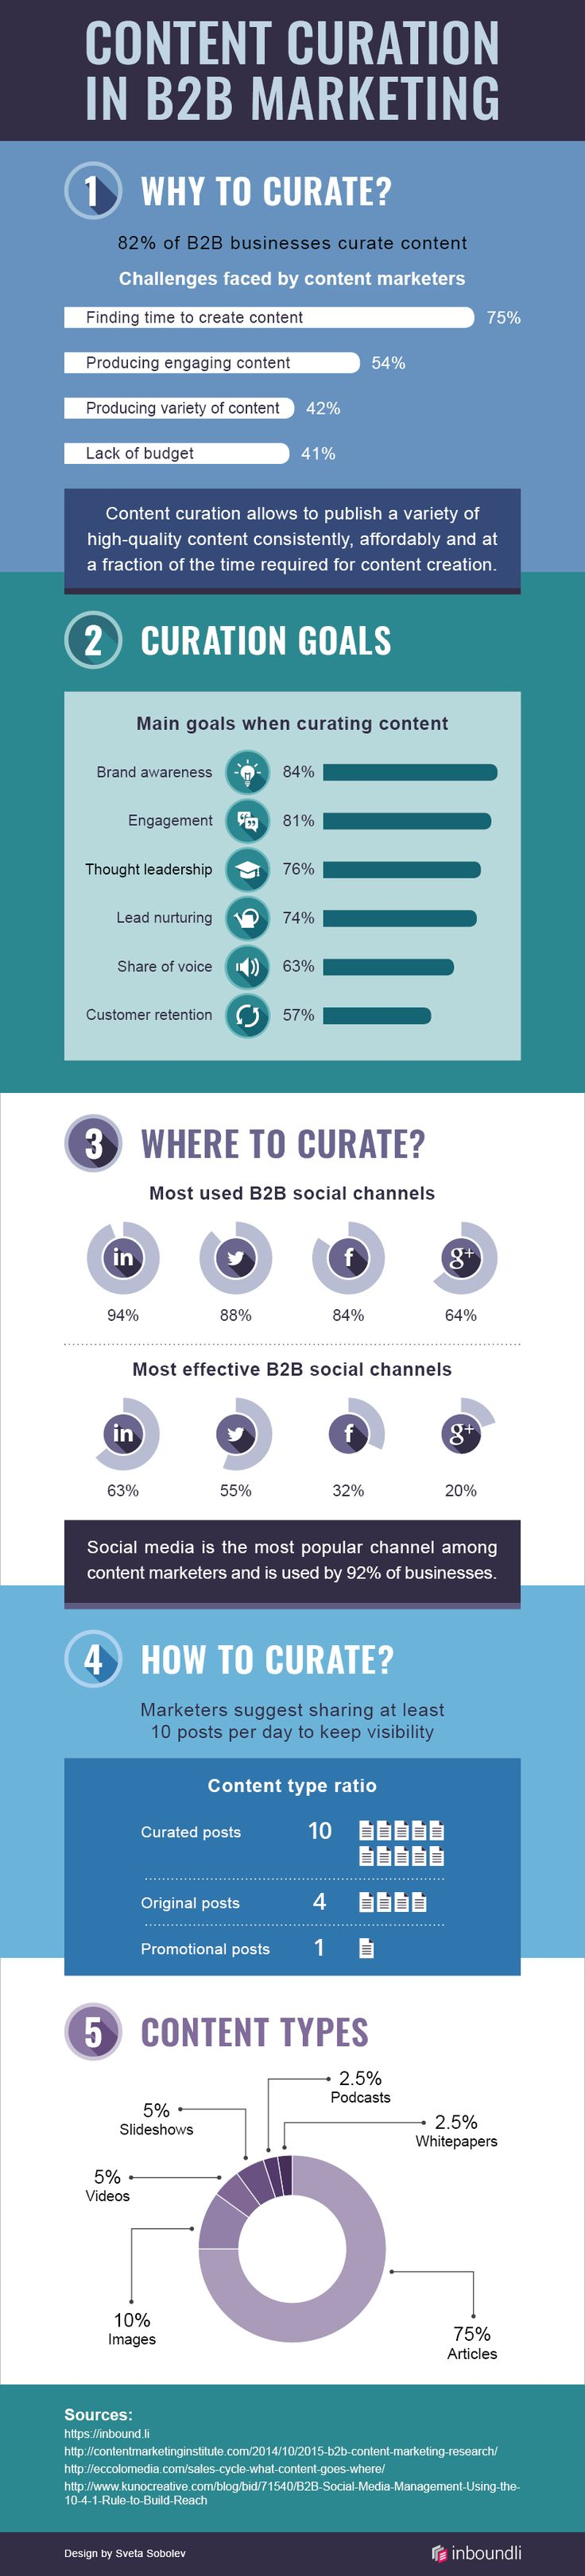 Content Curation in B2B Marketing #infographic #B2B #ContentCuration #ContentMarketing